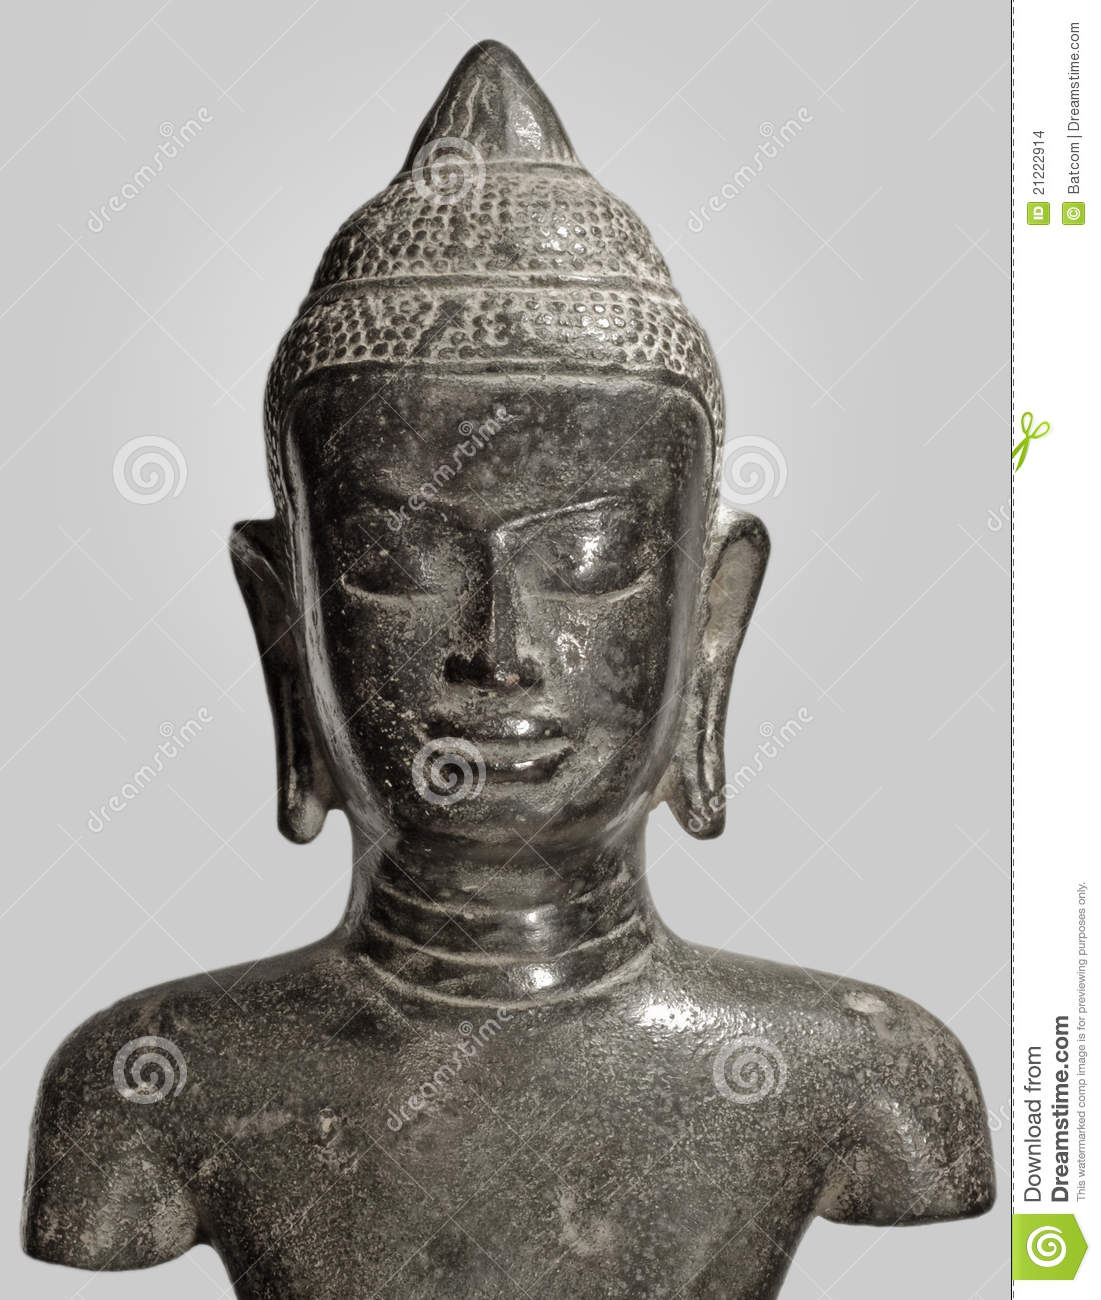 buddha zen statue stock photo image of india bust cult 21222914. Black Bedroom Furniture Sets. Home Design Ideas